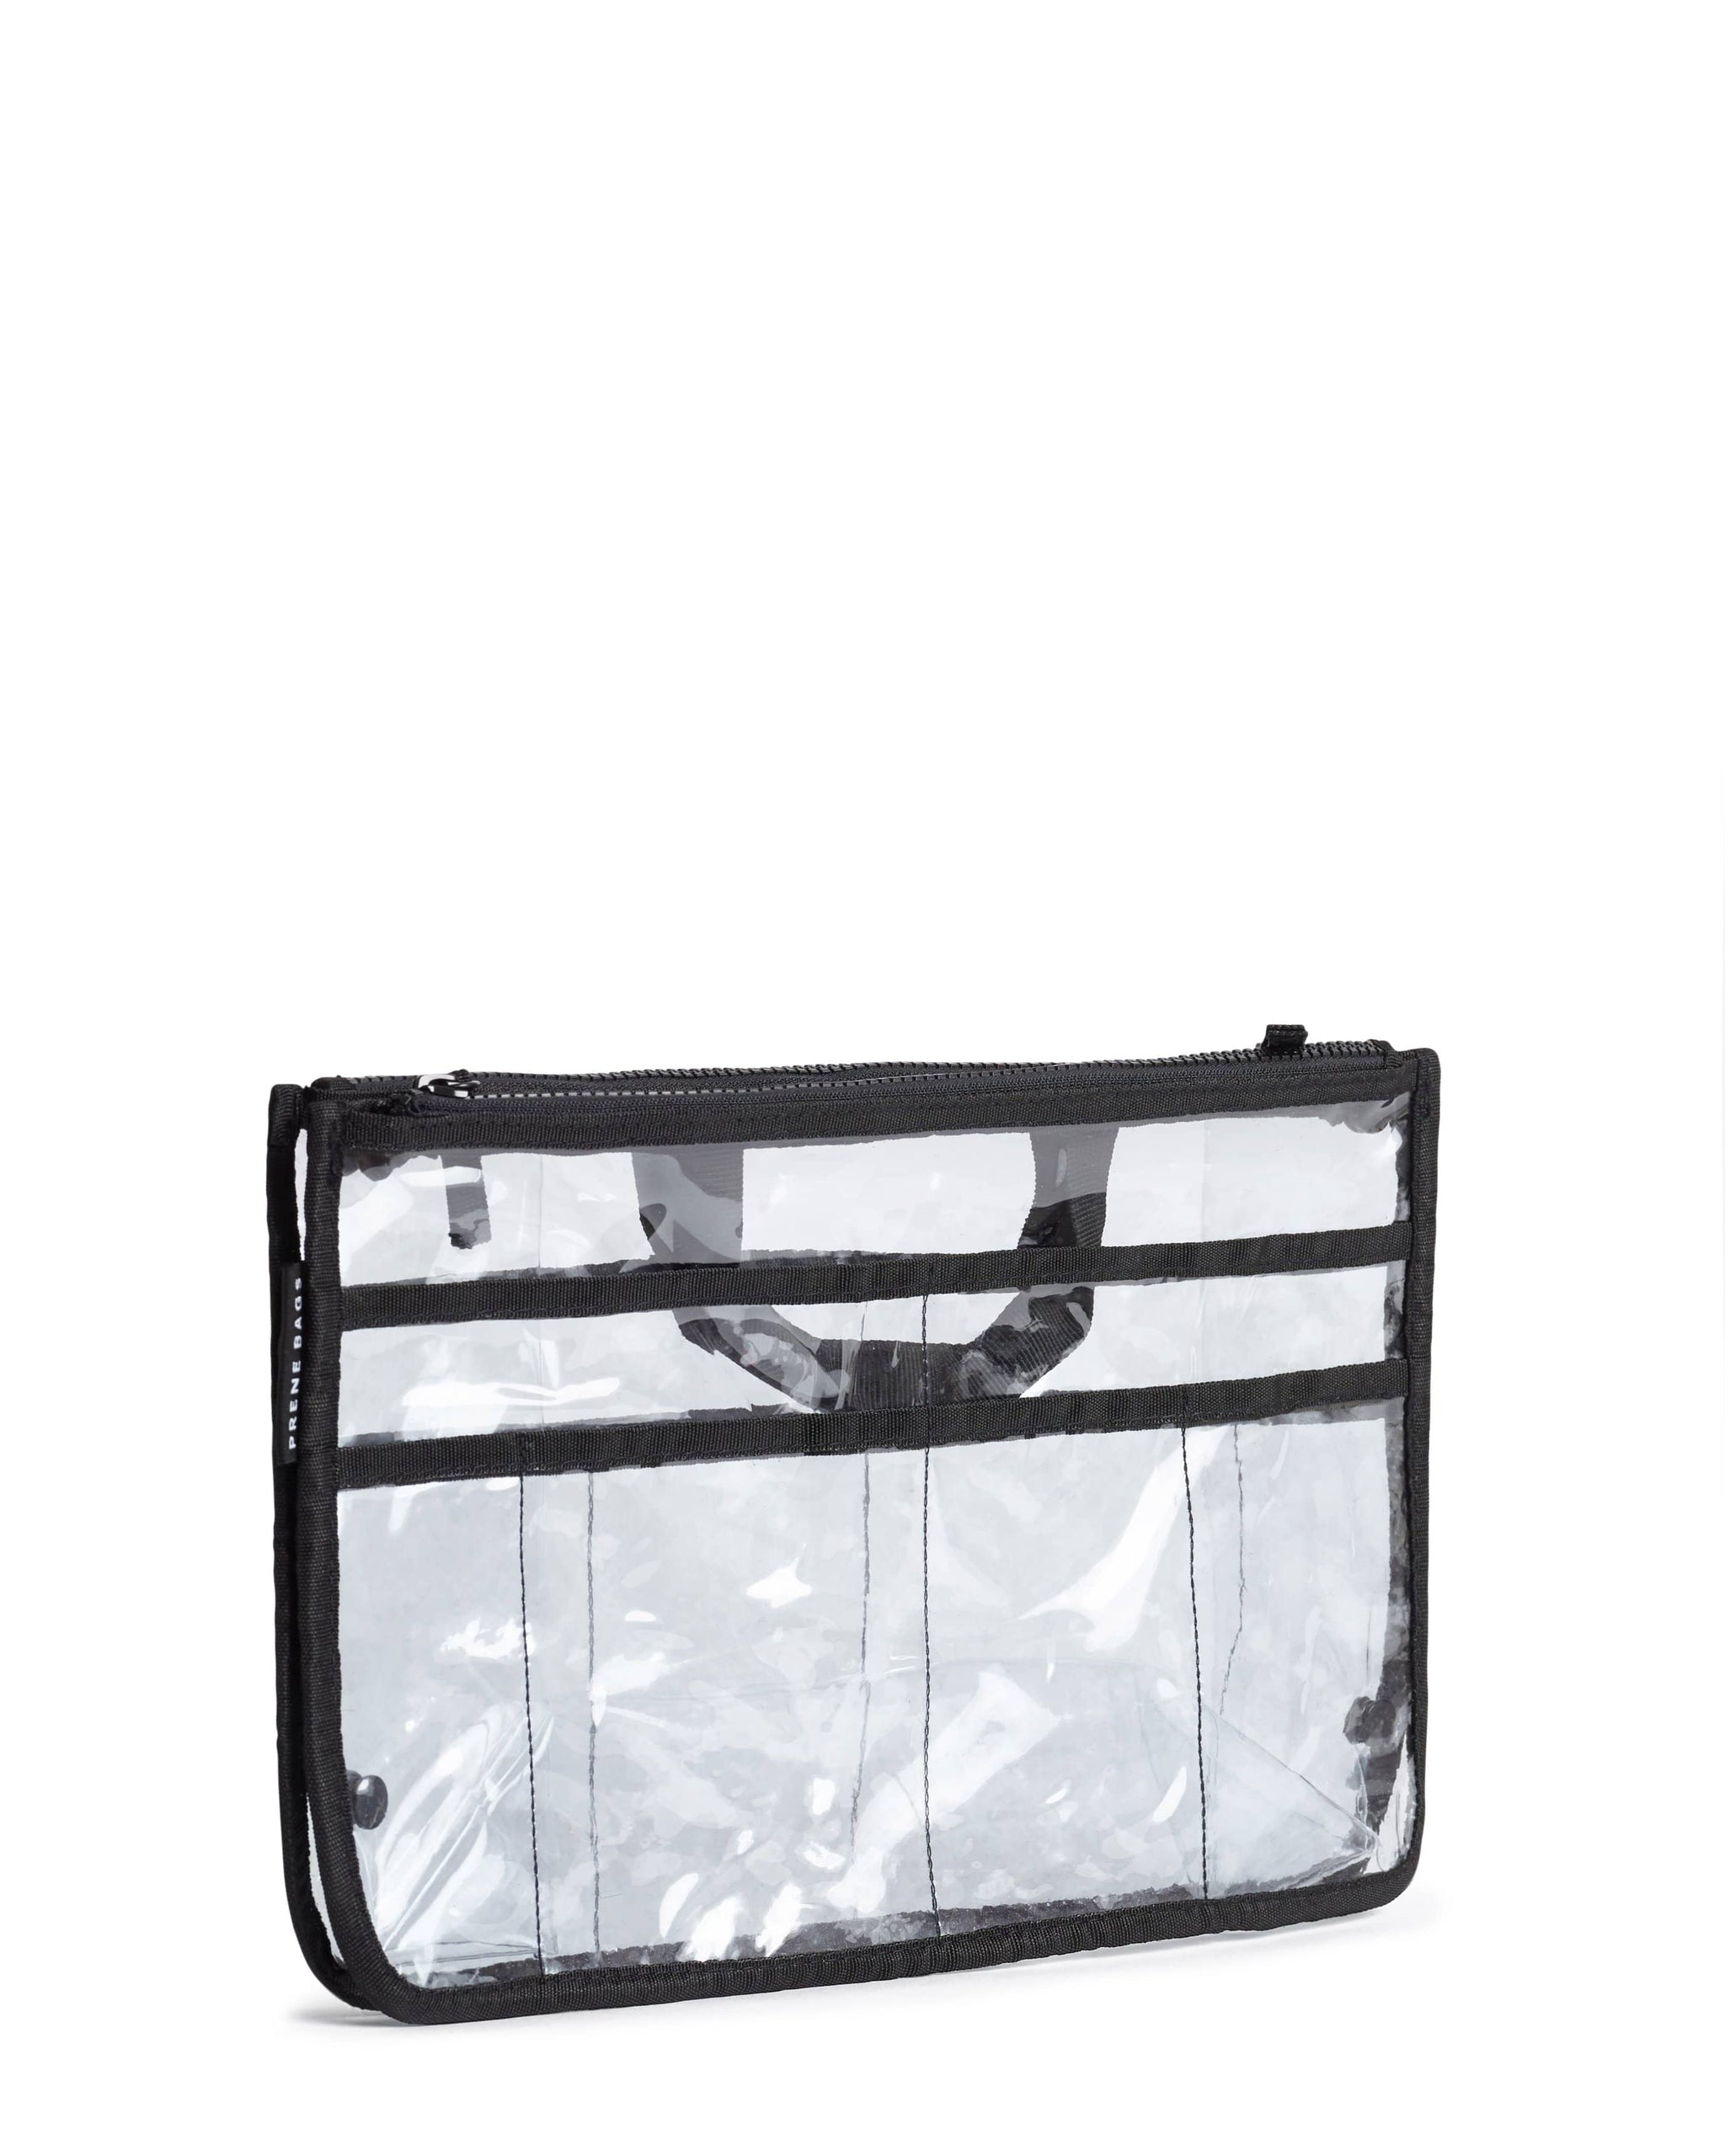 Prene Bags Clear Bag Organiser